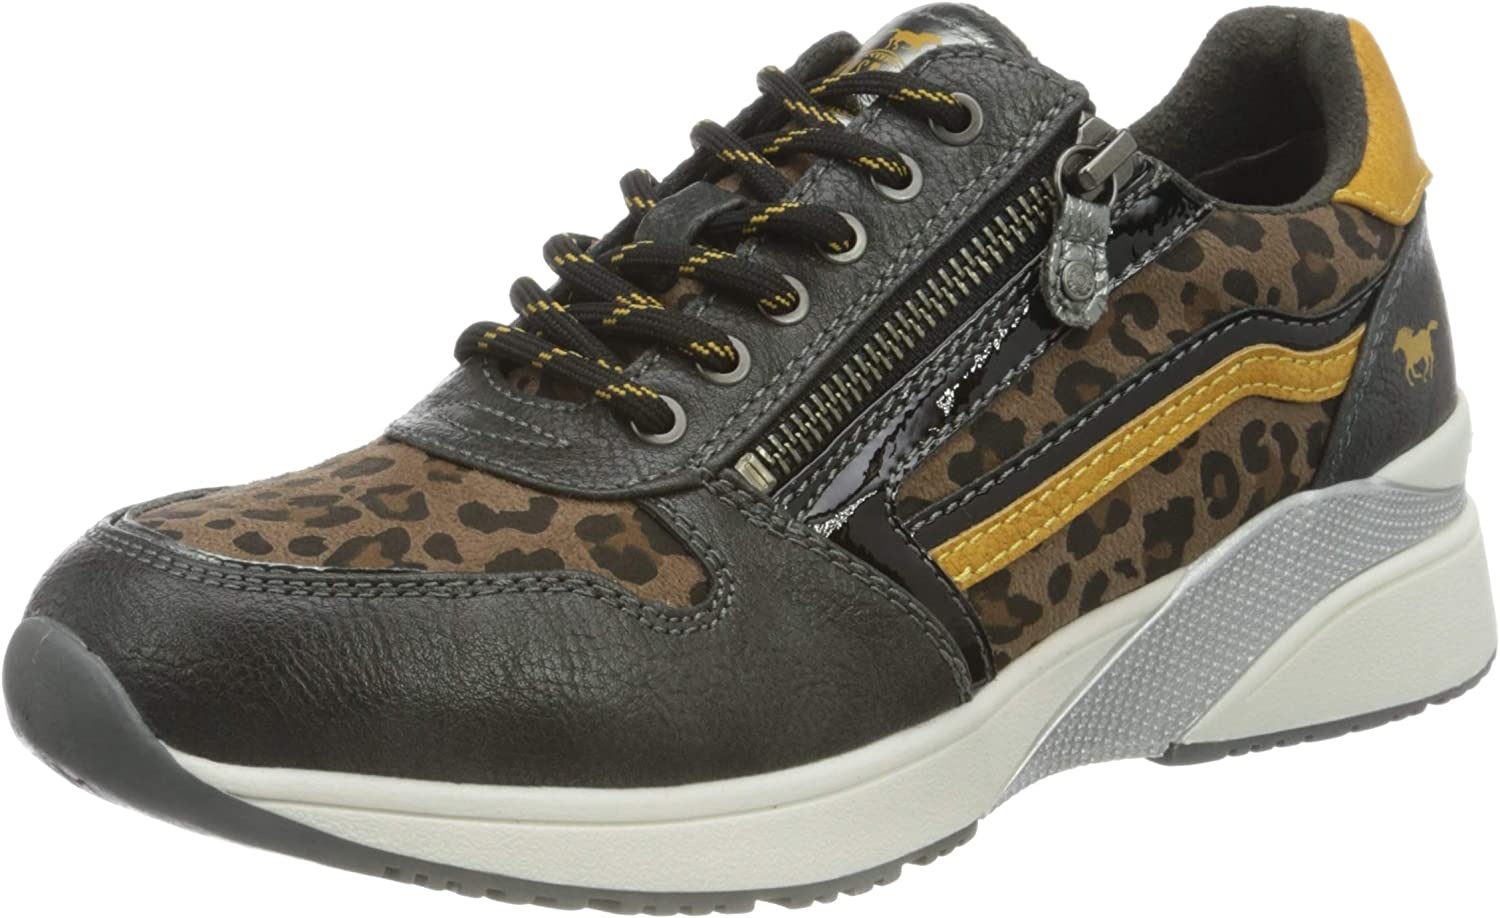 Denver Mall Mustang Women's Sneakers Latest item Low-top